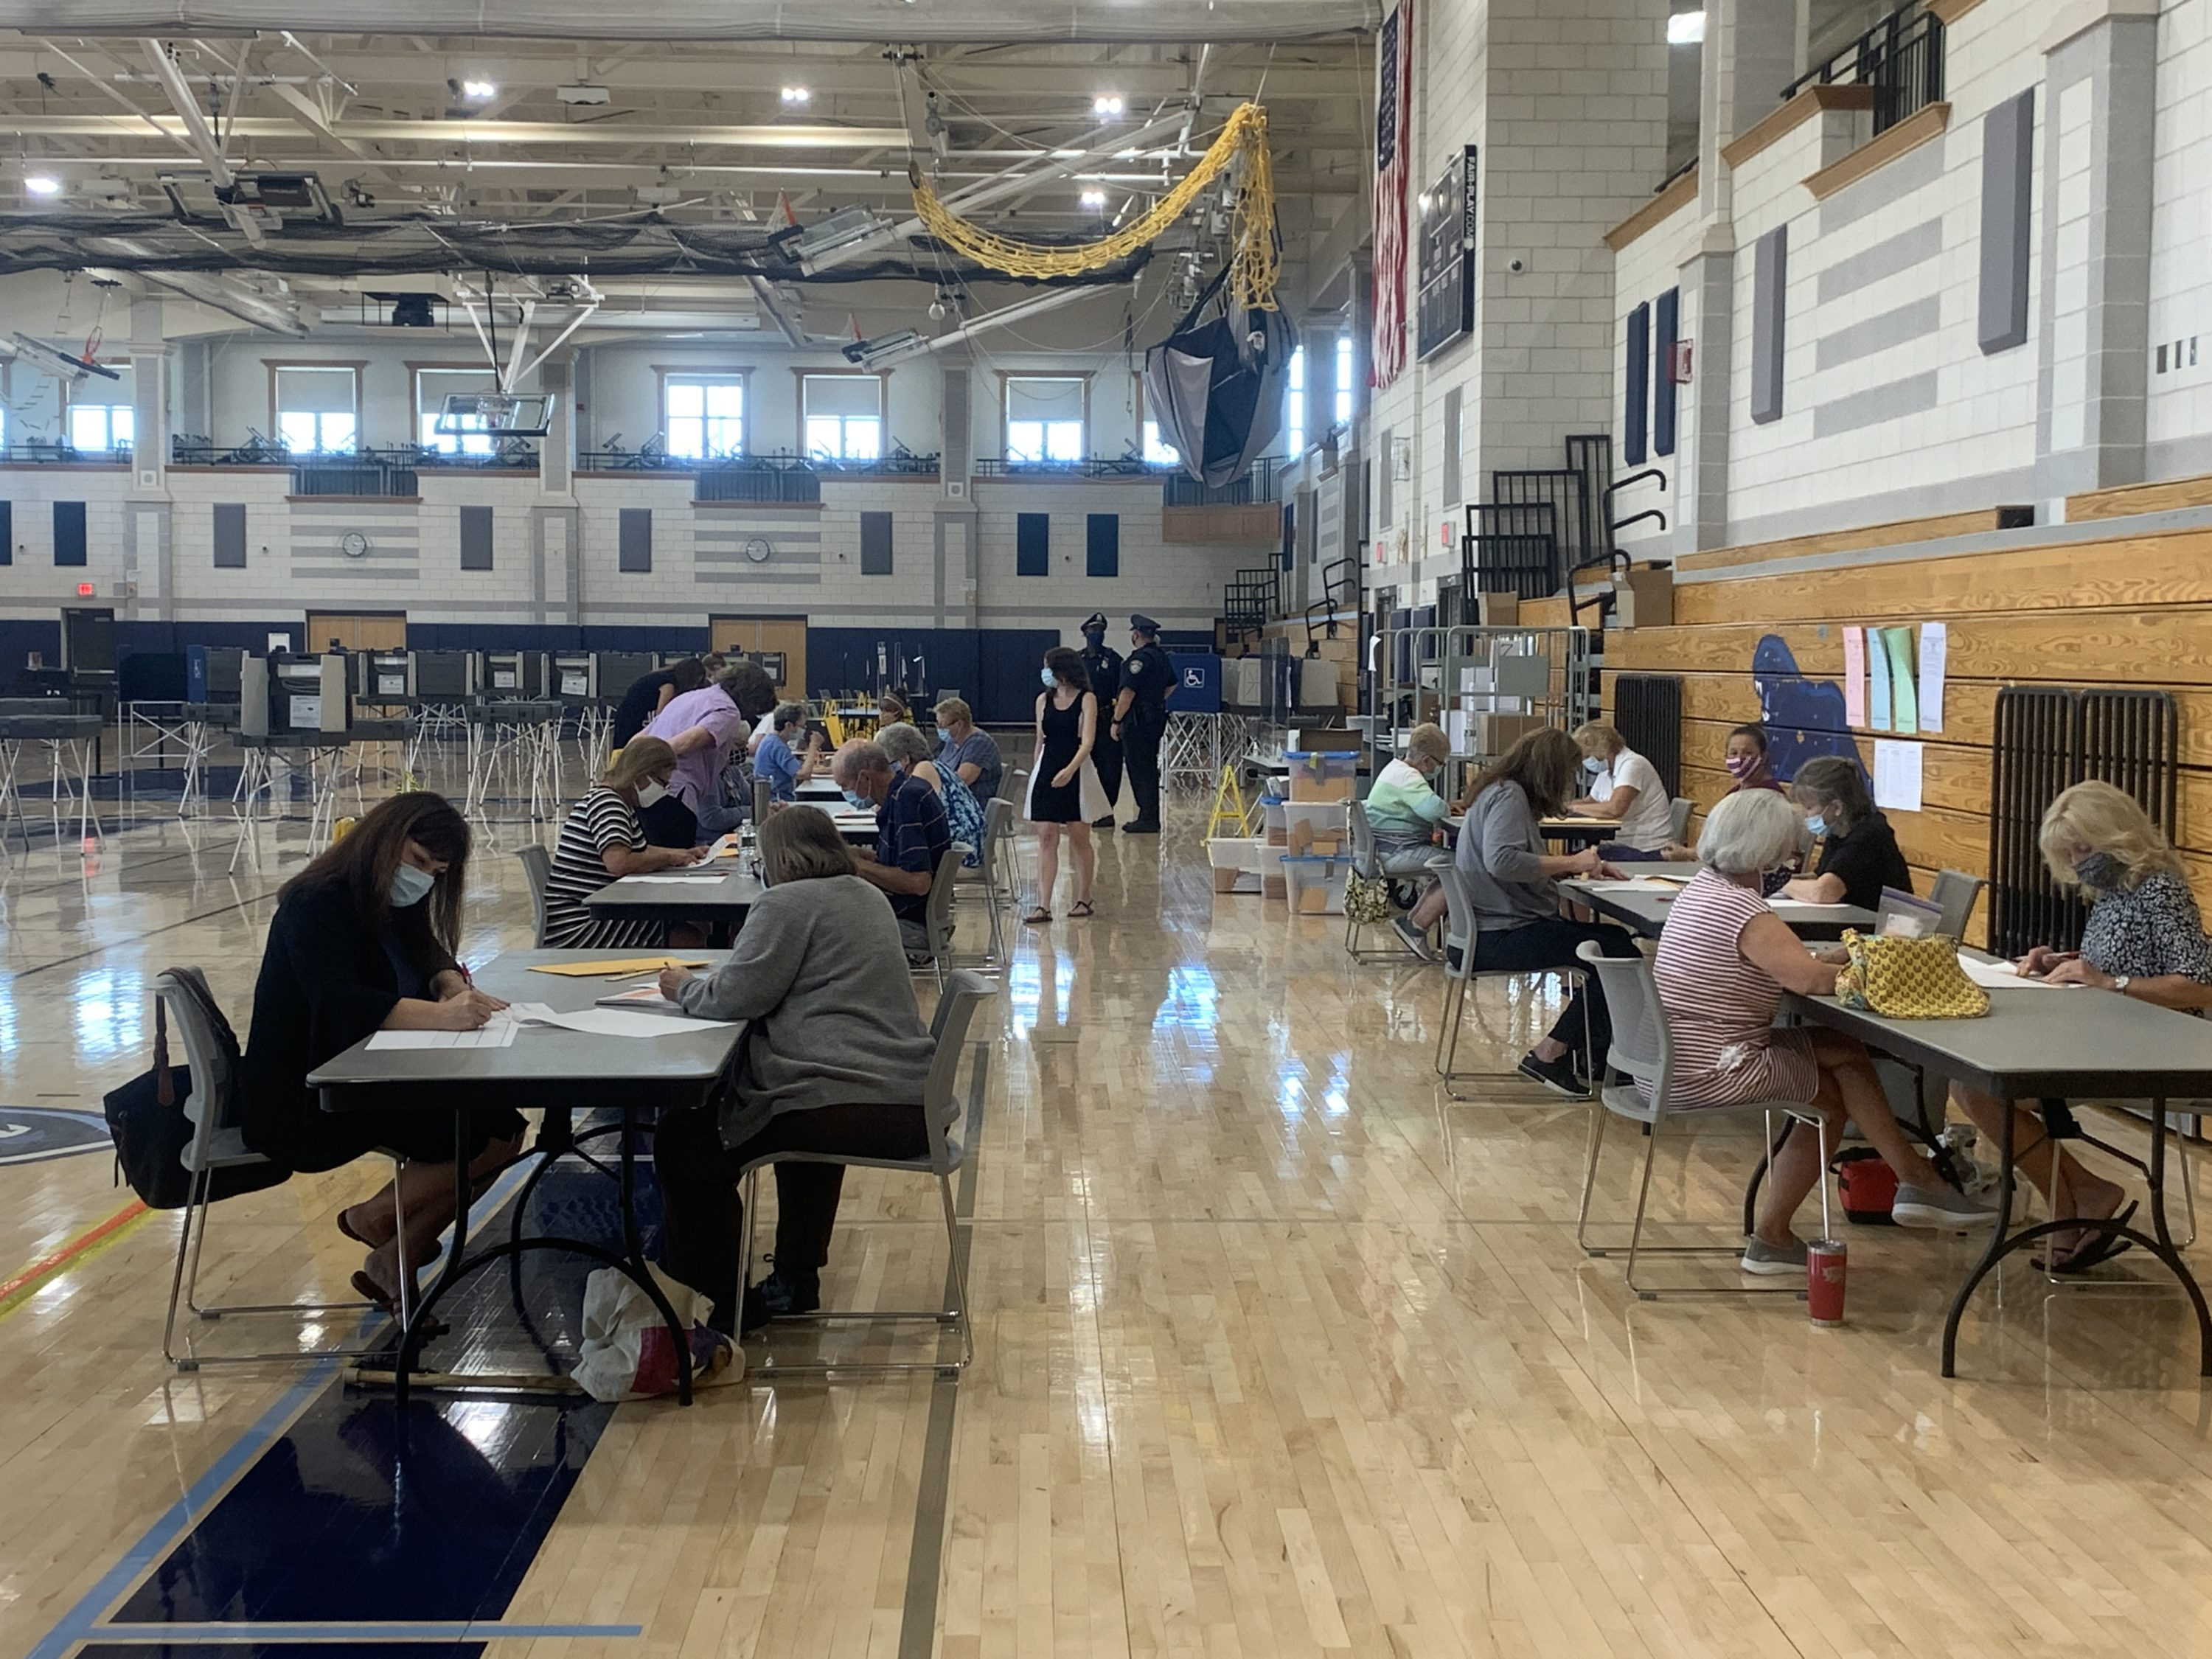 Election workers and staffers from the Secretary of State's office continue to count votes in Franklin, where roughly 3,000 uncounted ballots were discovered two days after Tuesday's primary. (Simón Rios/WBUR)